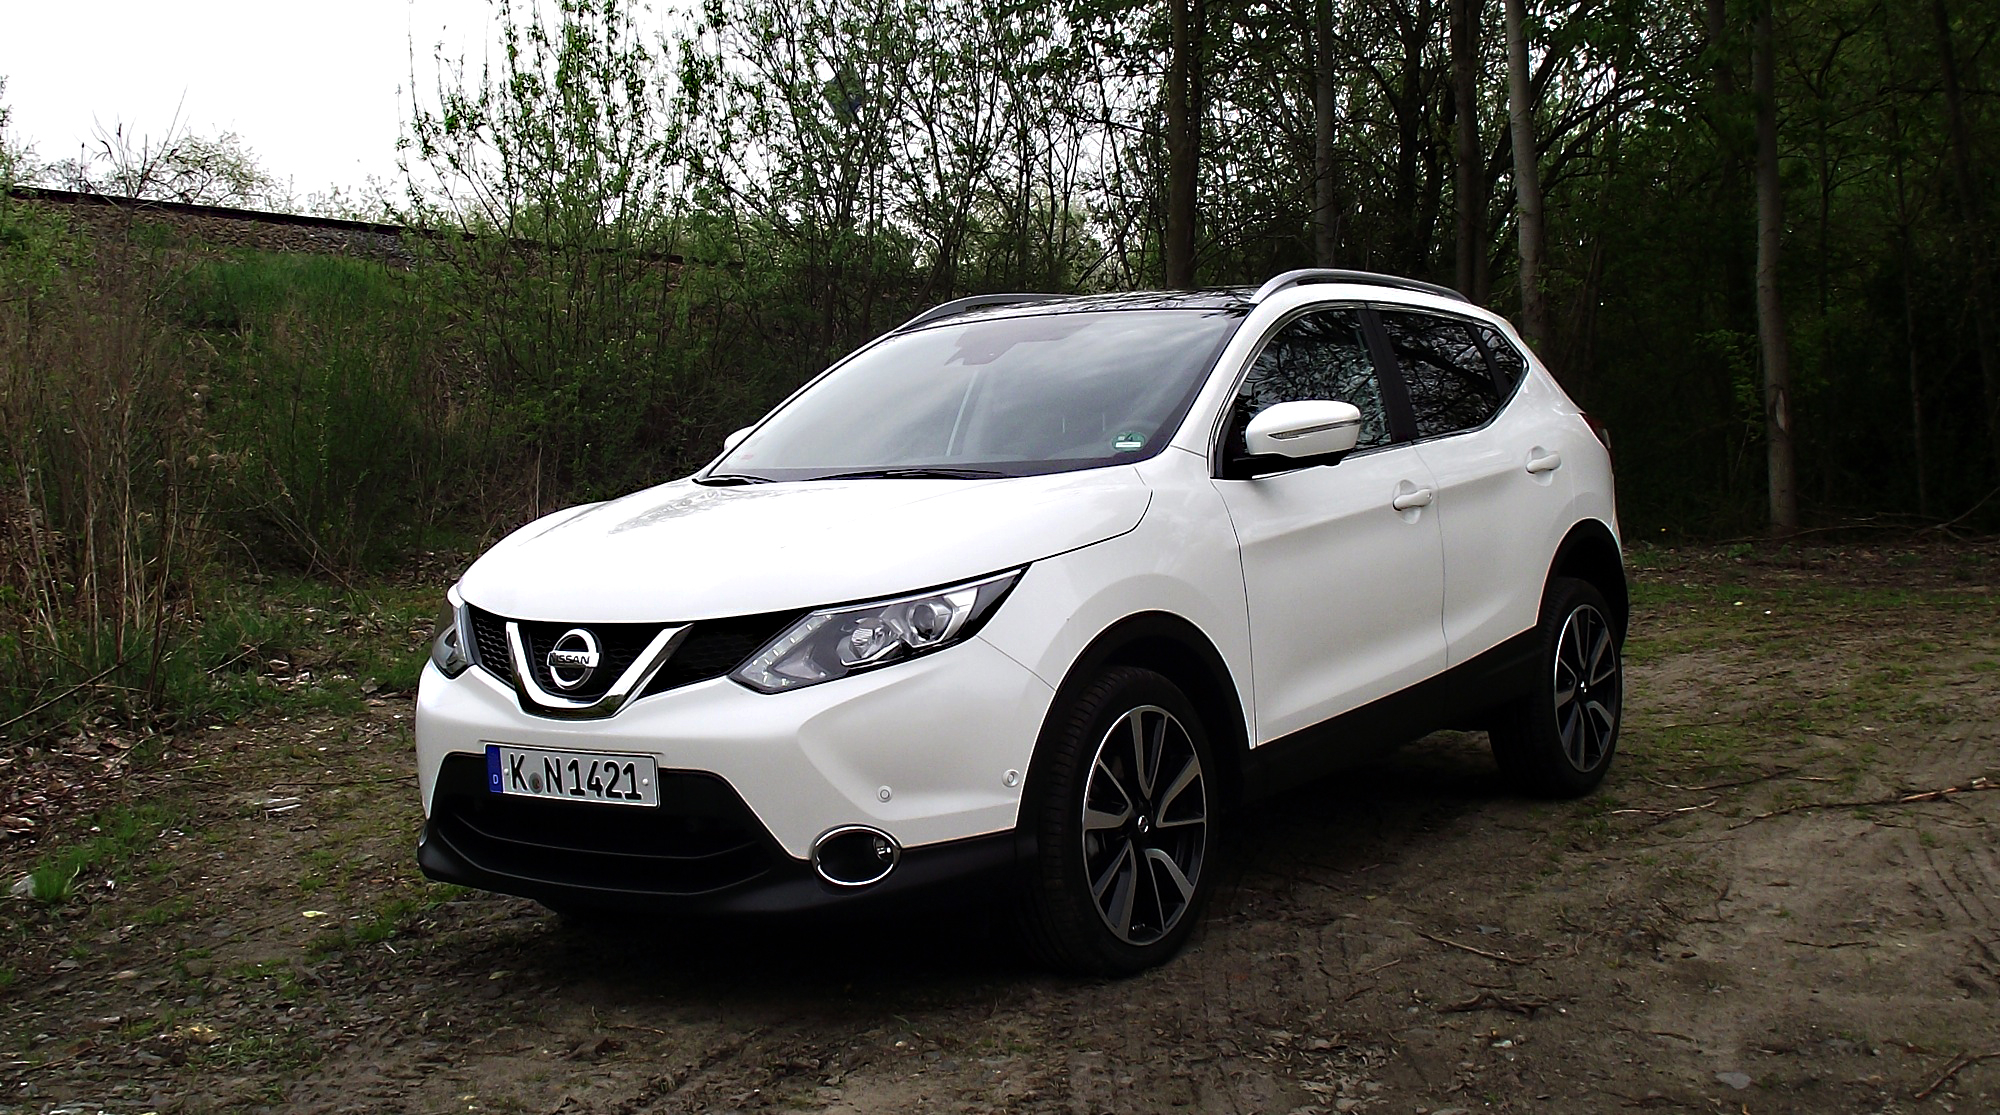 Nissan Qashqai 2016 Interieur File Nissan Qashqai 1 6 Dci All Mode 4x4i Tekna Interieur Cockpit